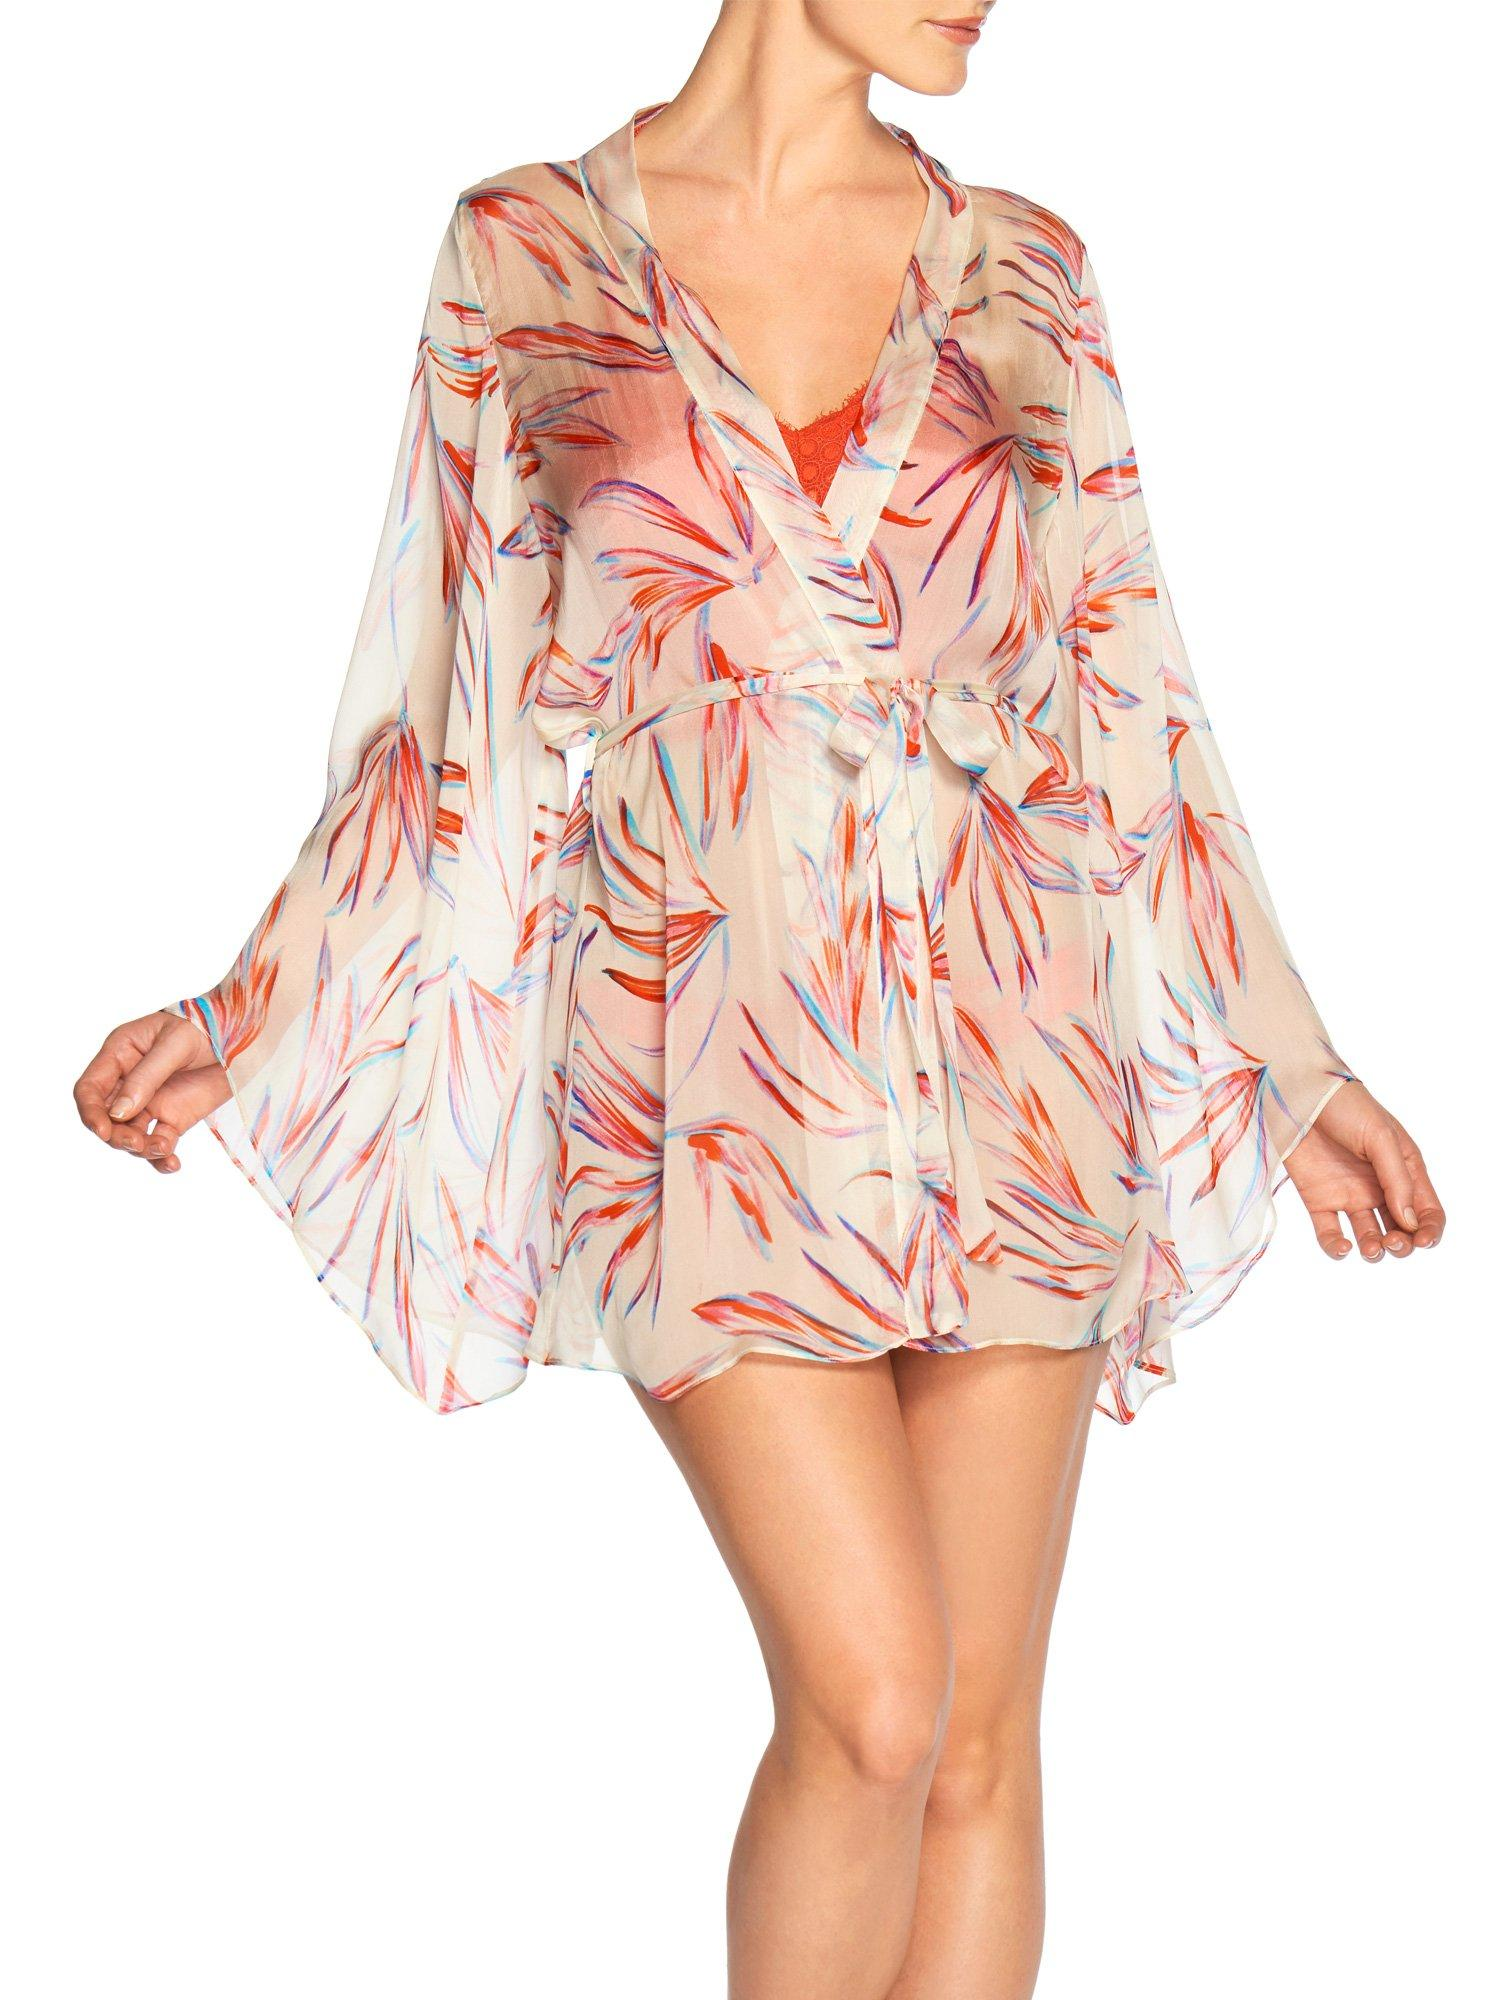 Chiffon Wrap Robes by Le Marché by NP